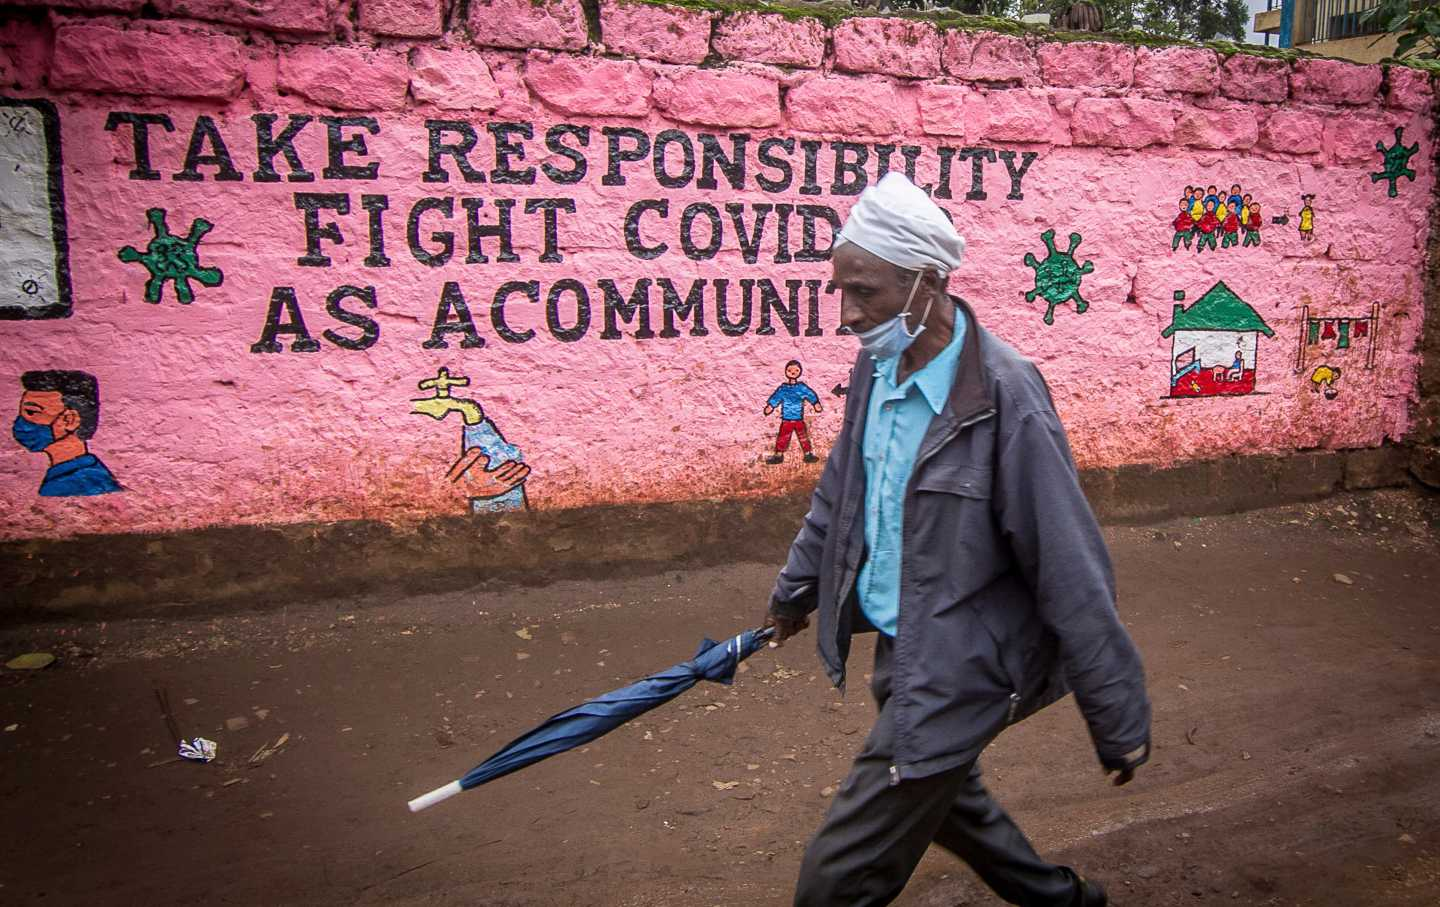 A man walking with a face mask in Kibera, a slum of Nairobi